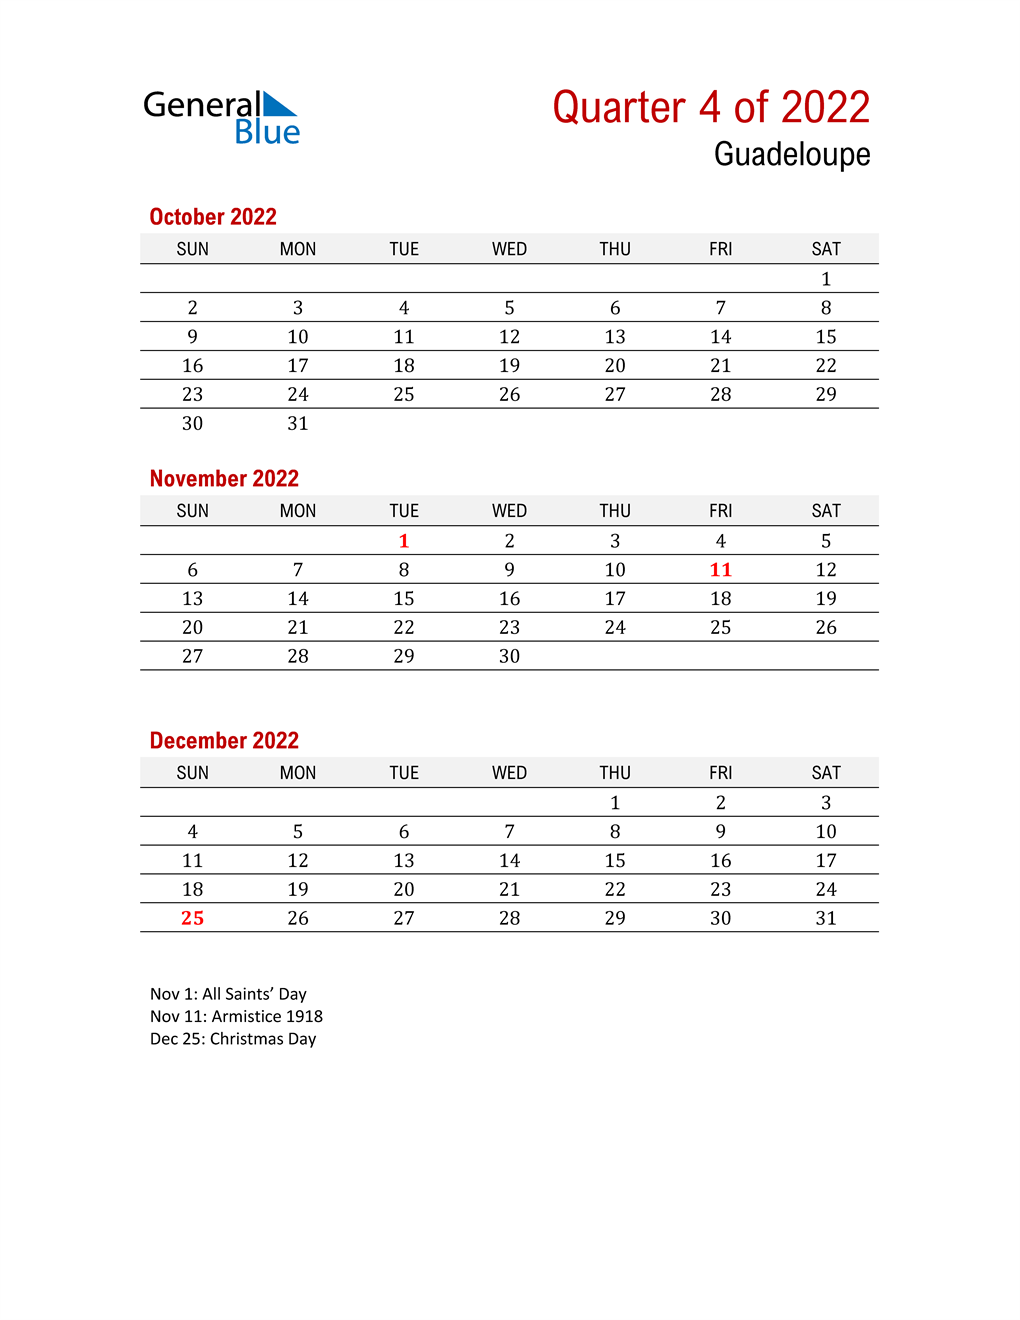 Printable Three Month Calendar for Guadeloupe